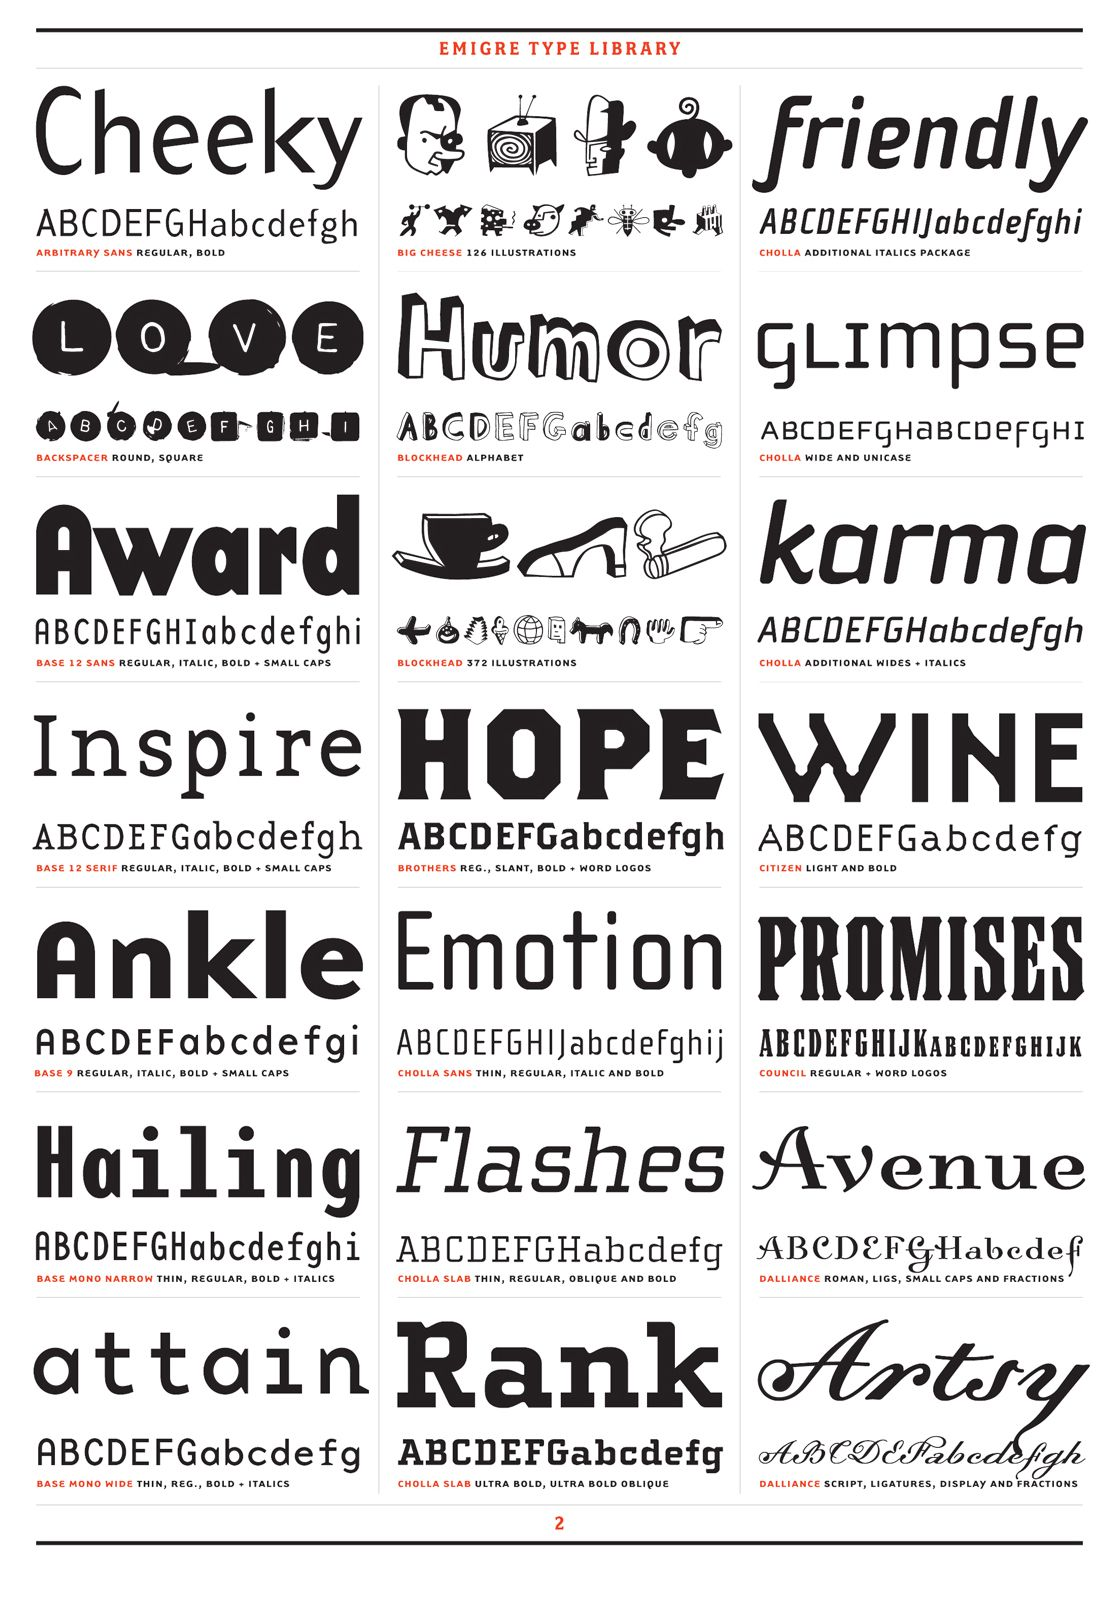 Emigre Font Library Specimens- Cheeky, Promises, and more